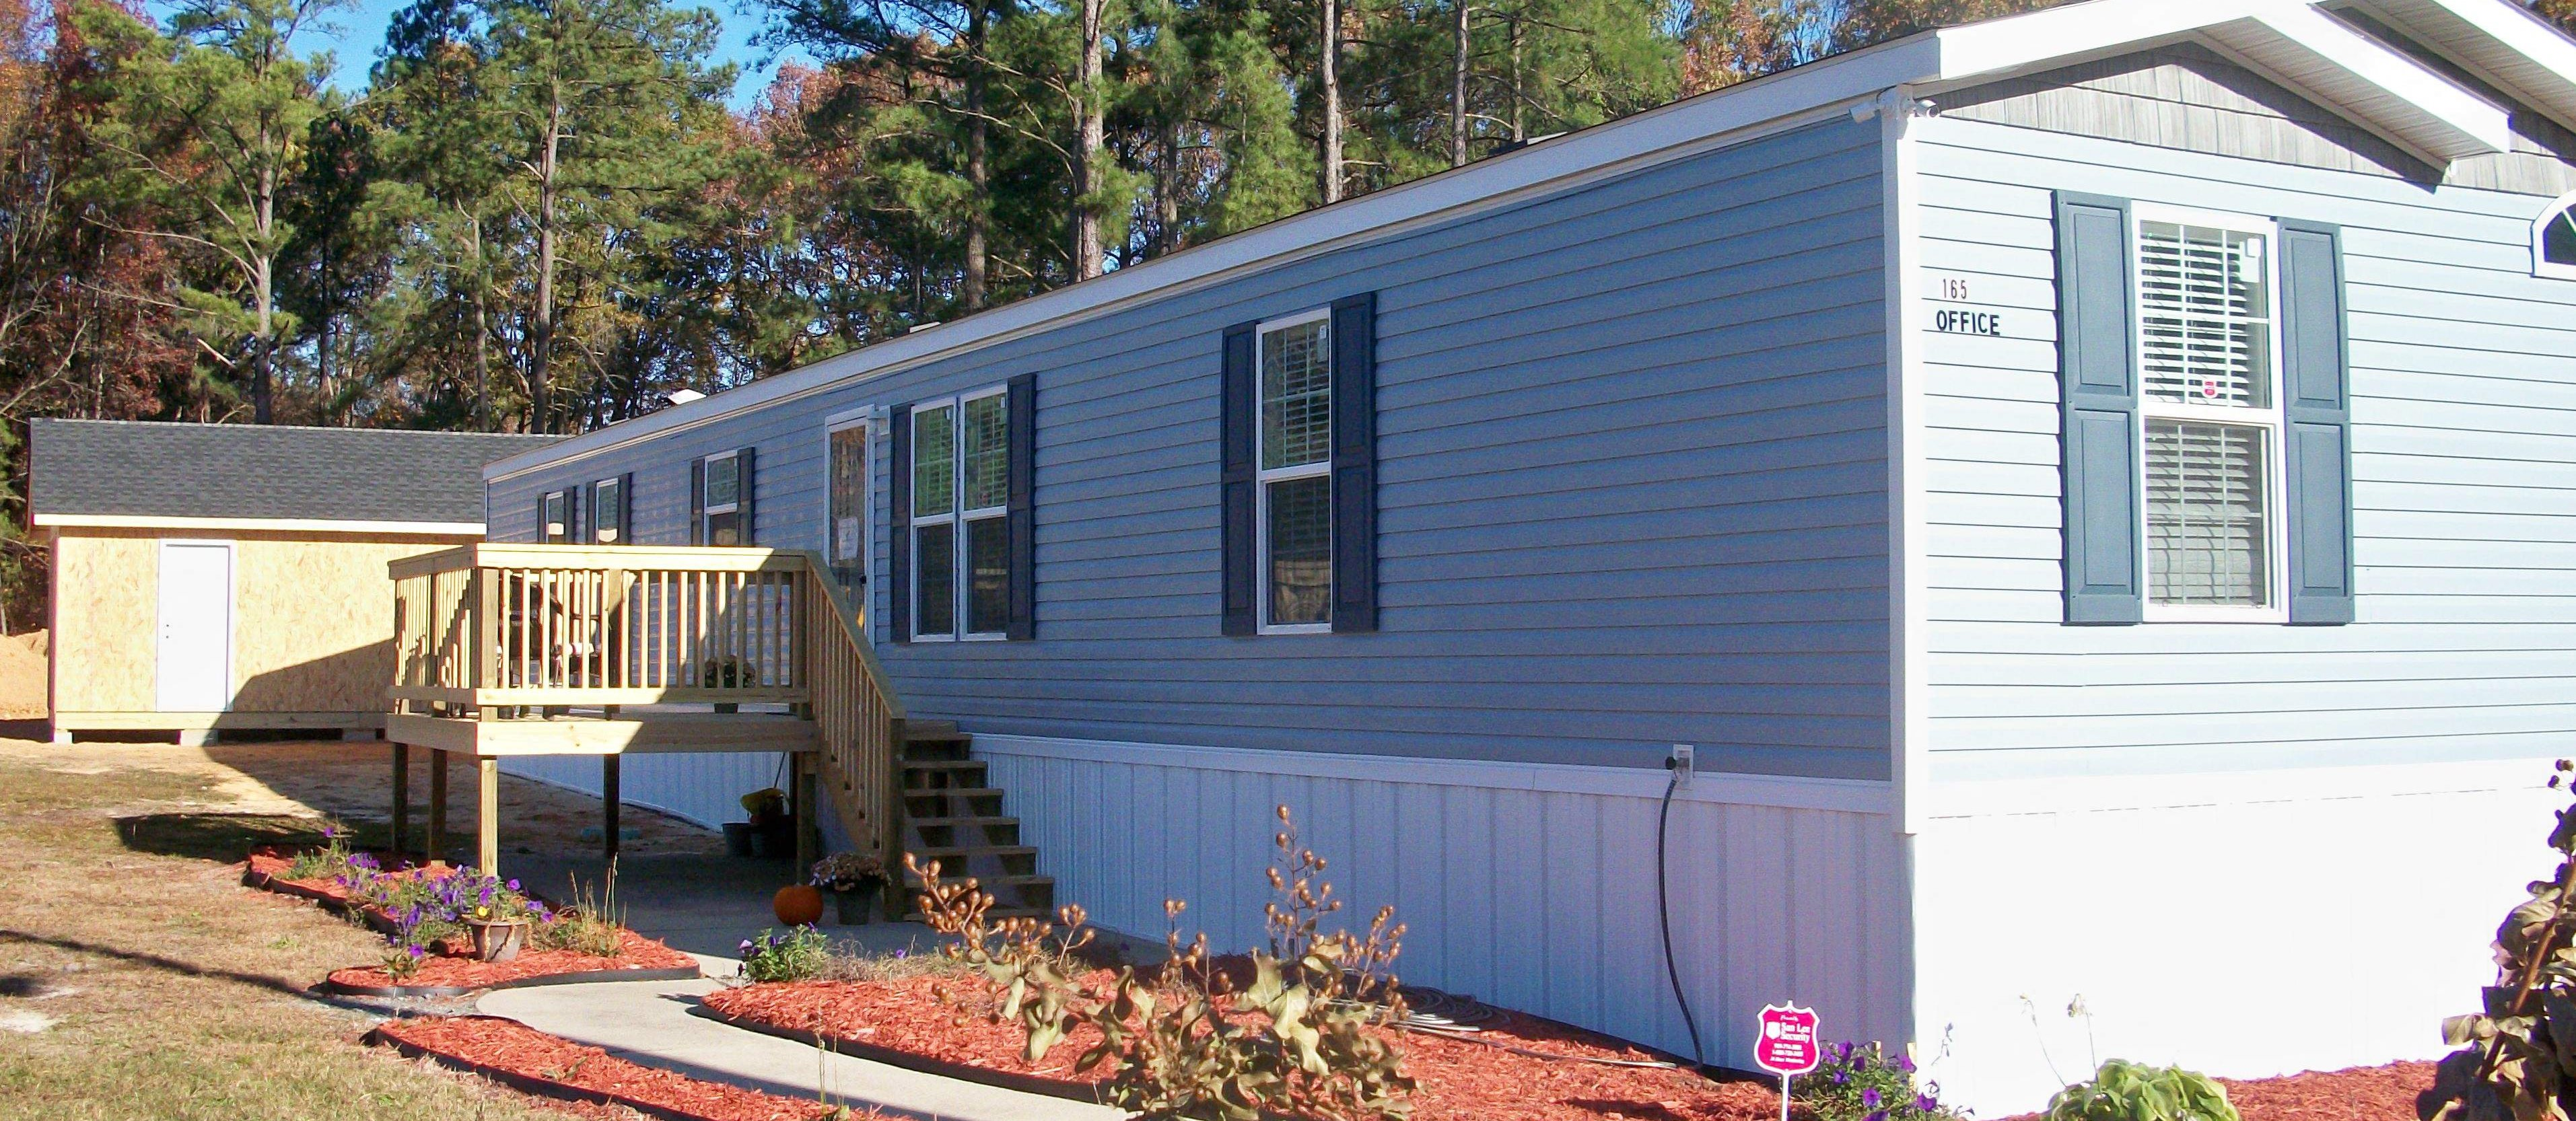 New Leasing Office Exterior at Pine Village Rental Homes in Sanford, NC 27332